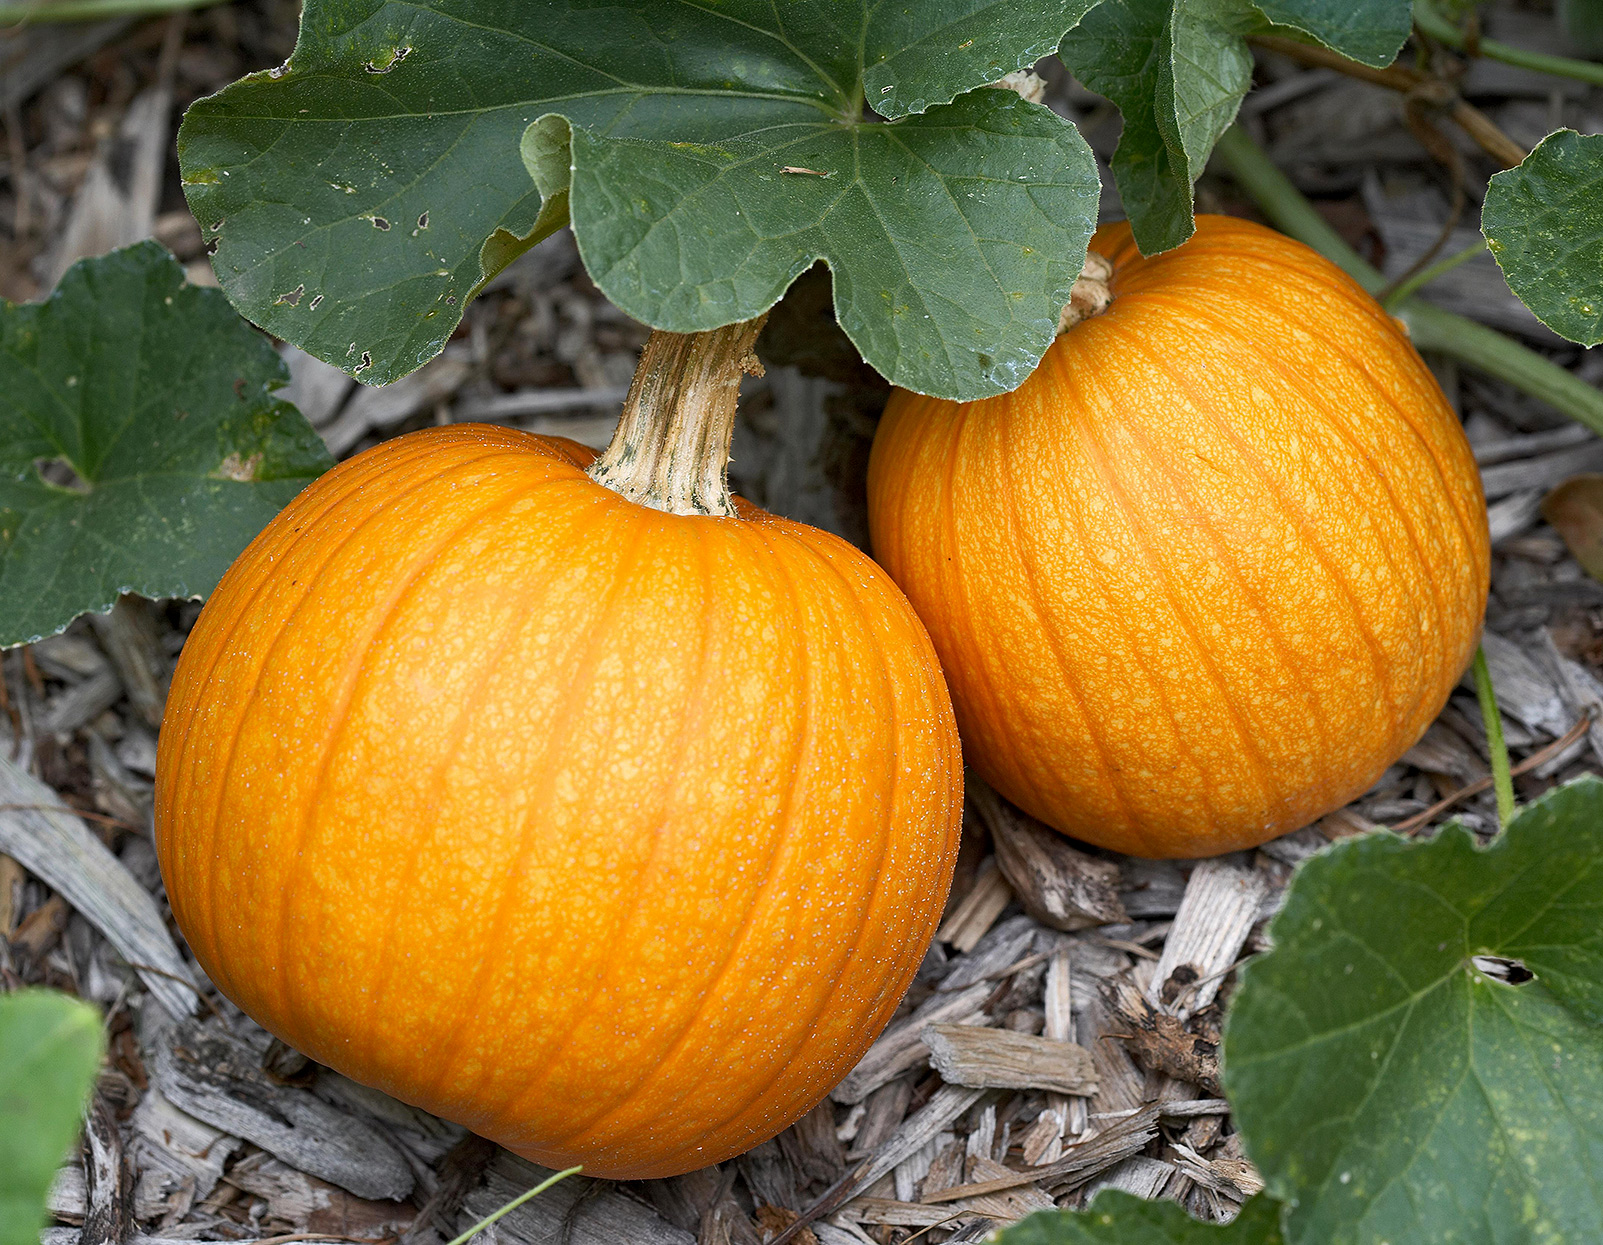 'small sugar' pumpkins growing on vine